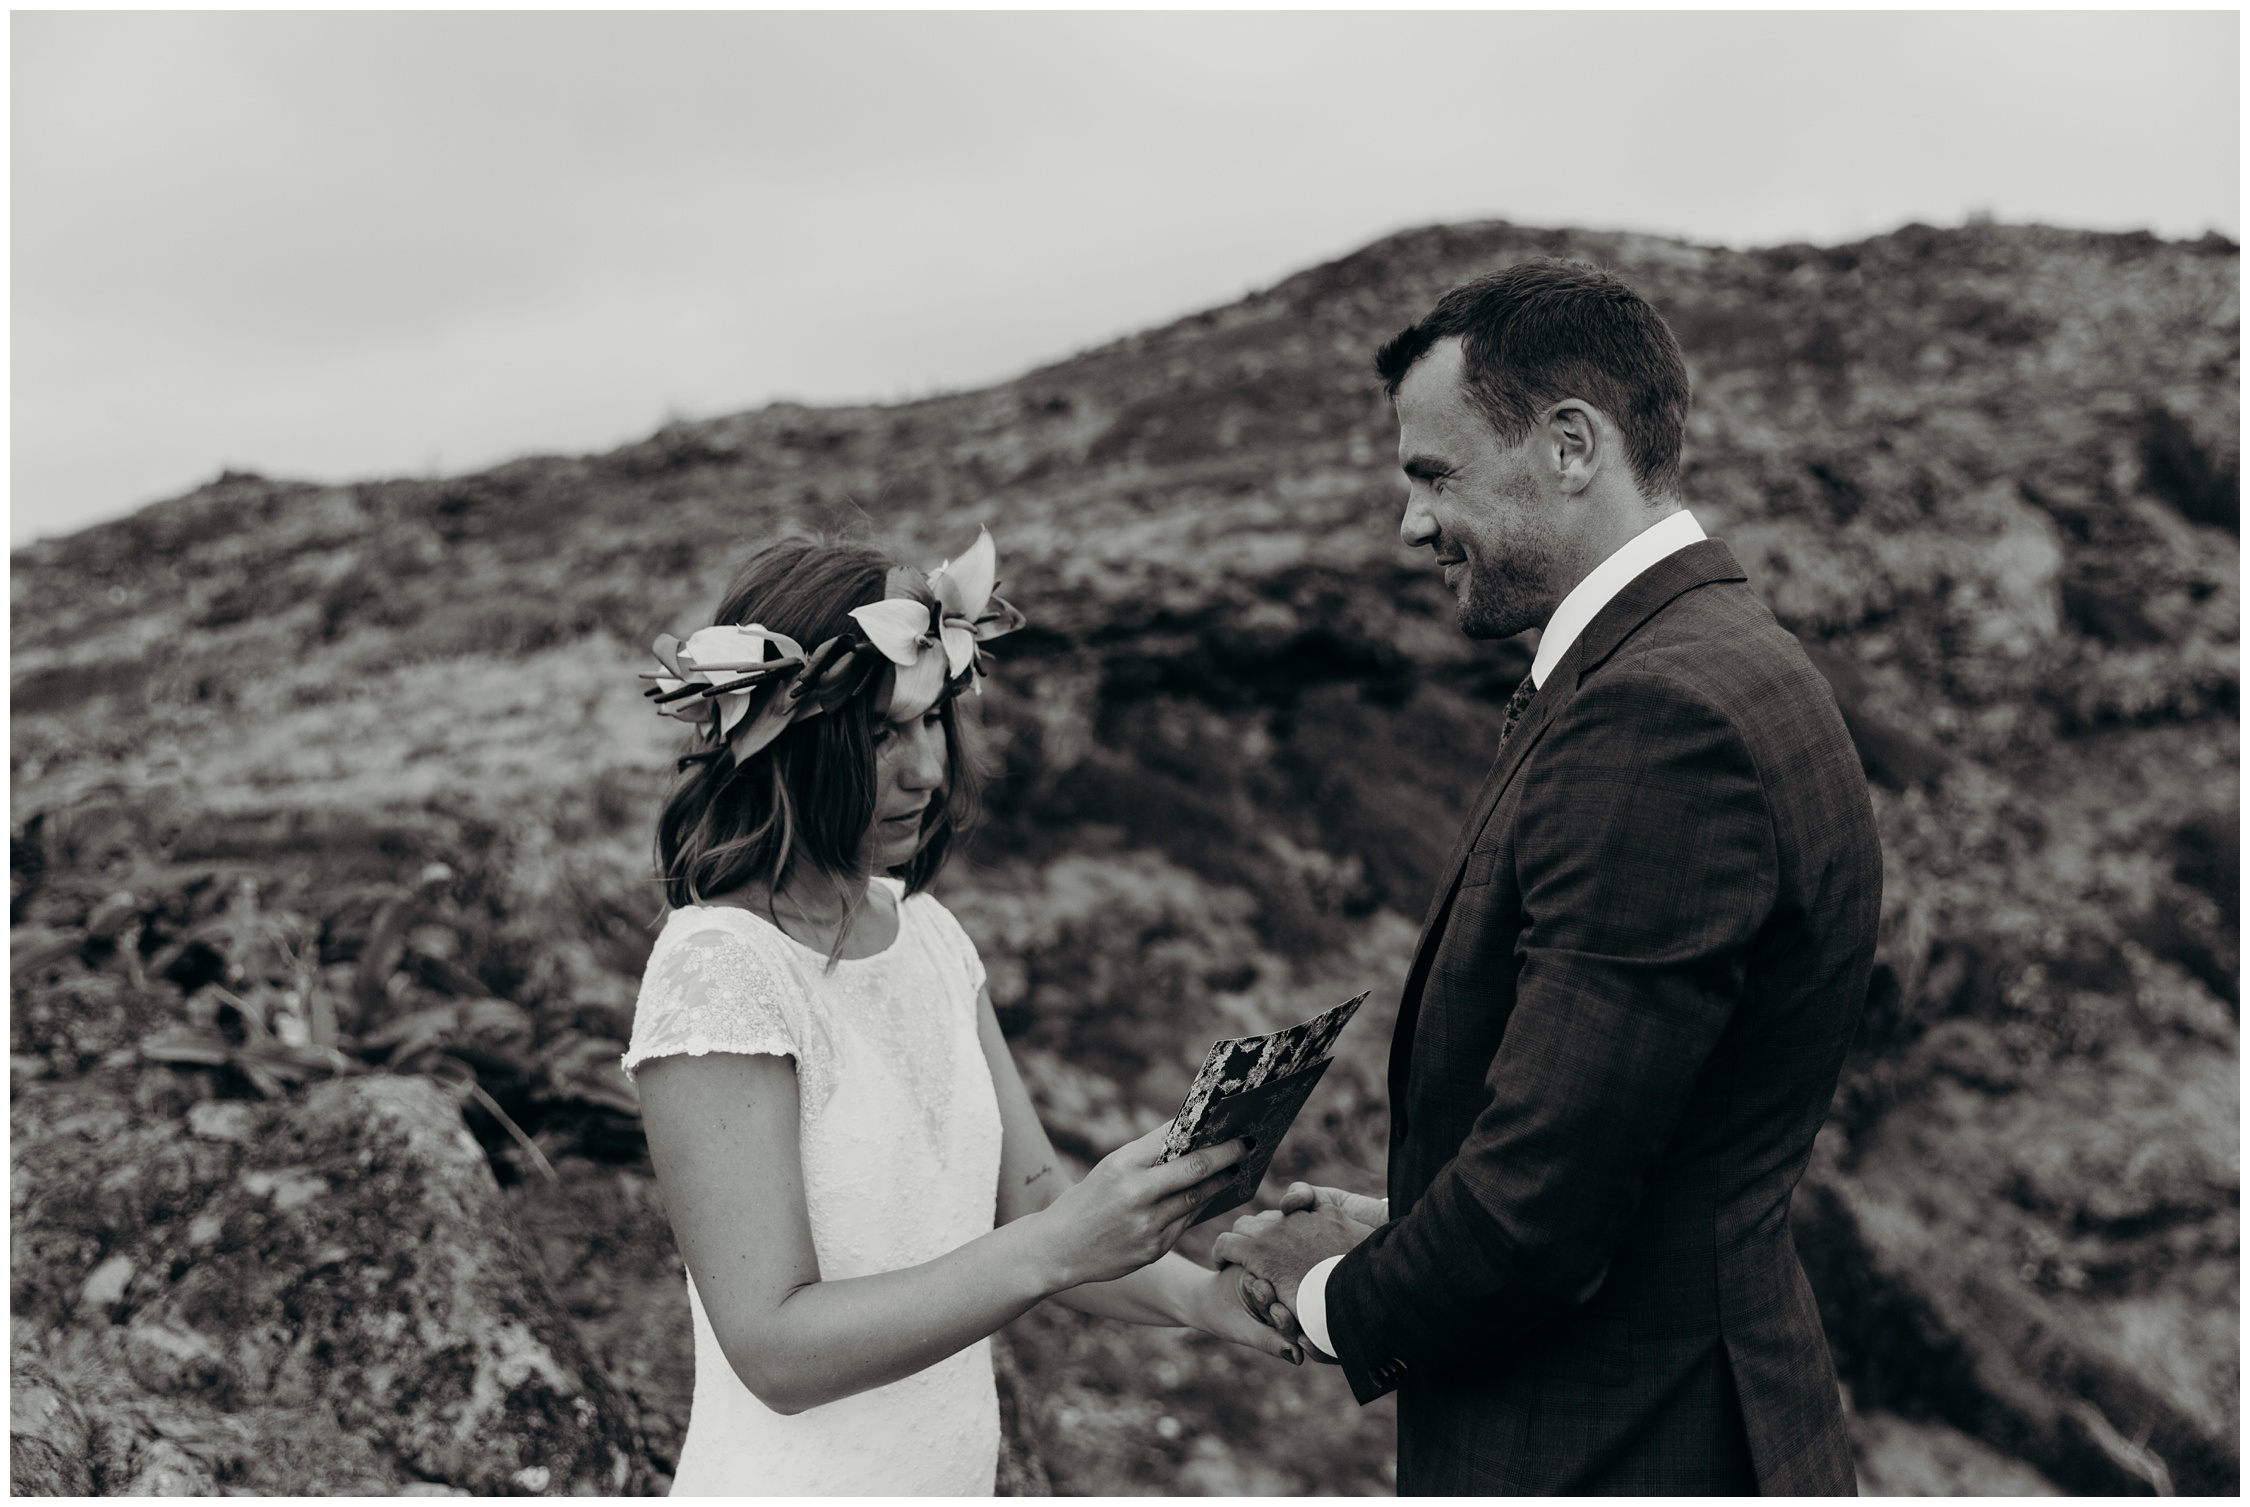 Hawaii-Wedding-Photographer-Keani-Bakula-Turtle-Bay_0025.jpg